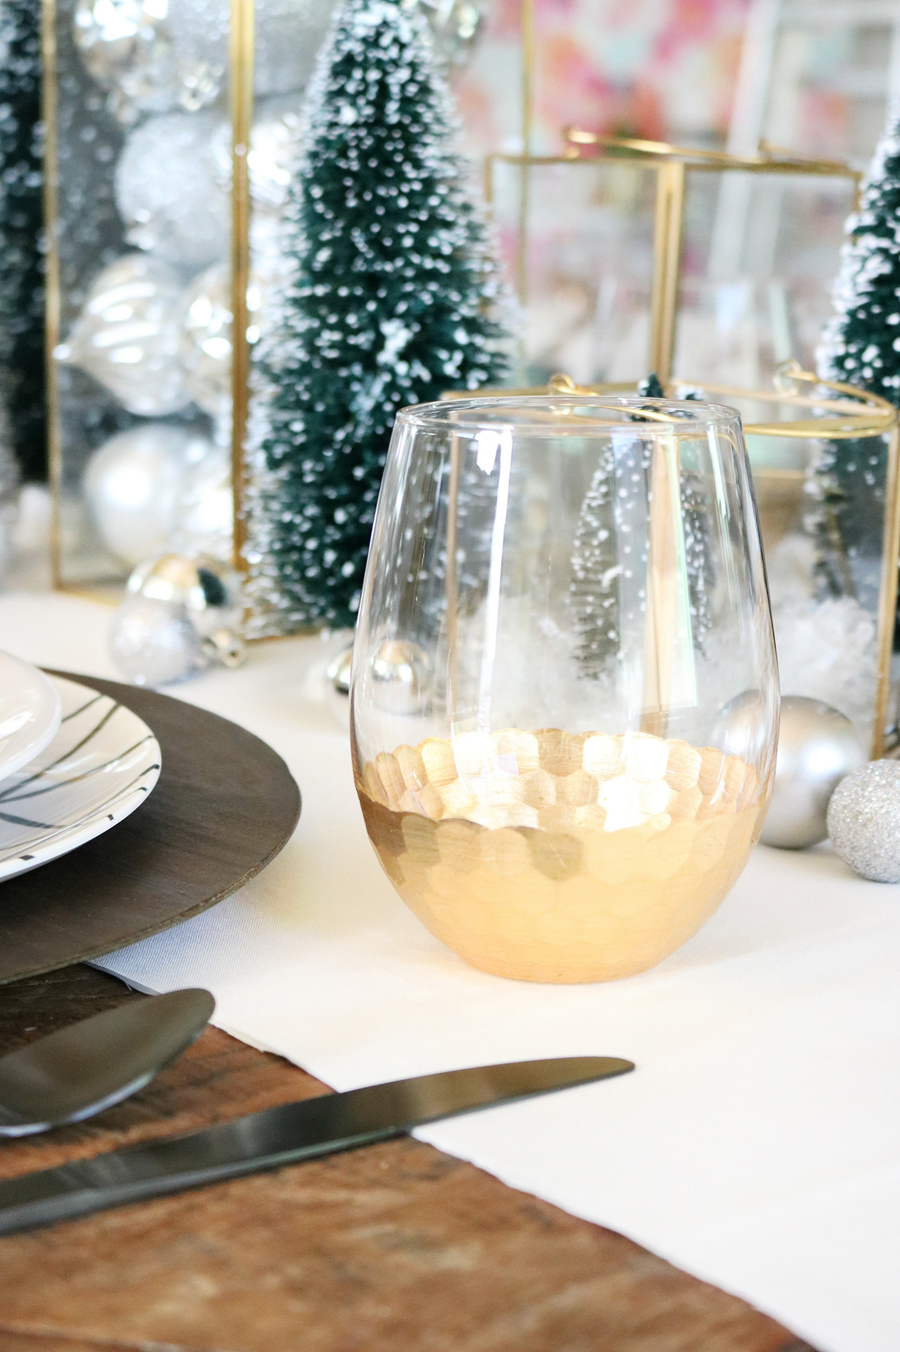 Simple and Modern Christmas Dining Table Ideas - BHG Live Better gold hexagon stemless wine glasses